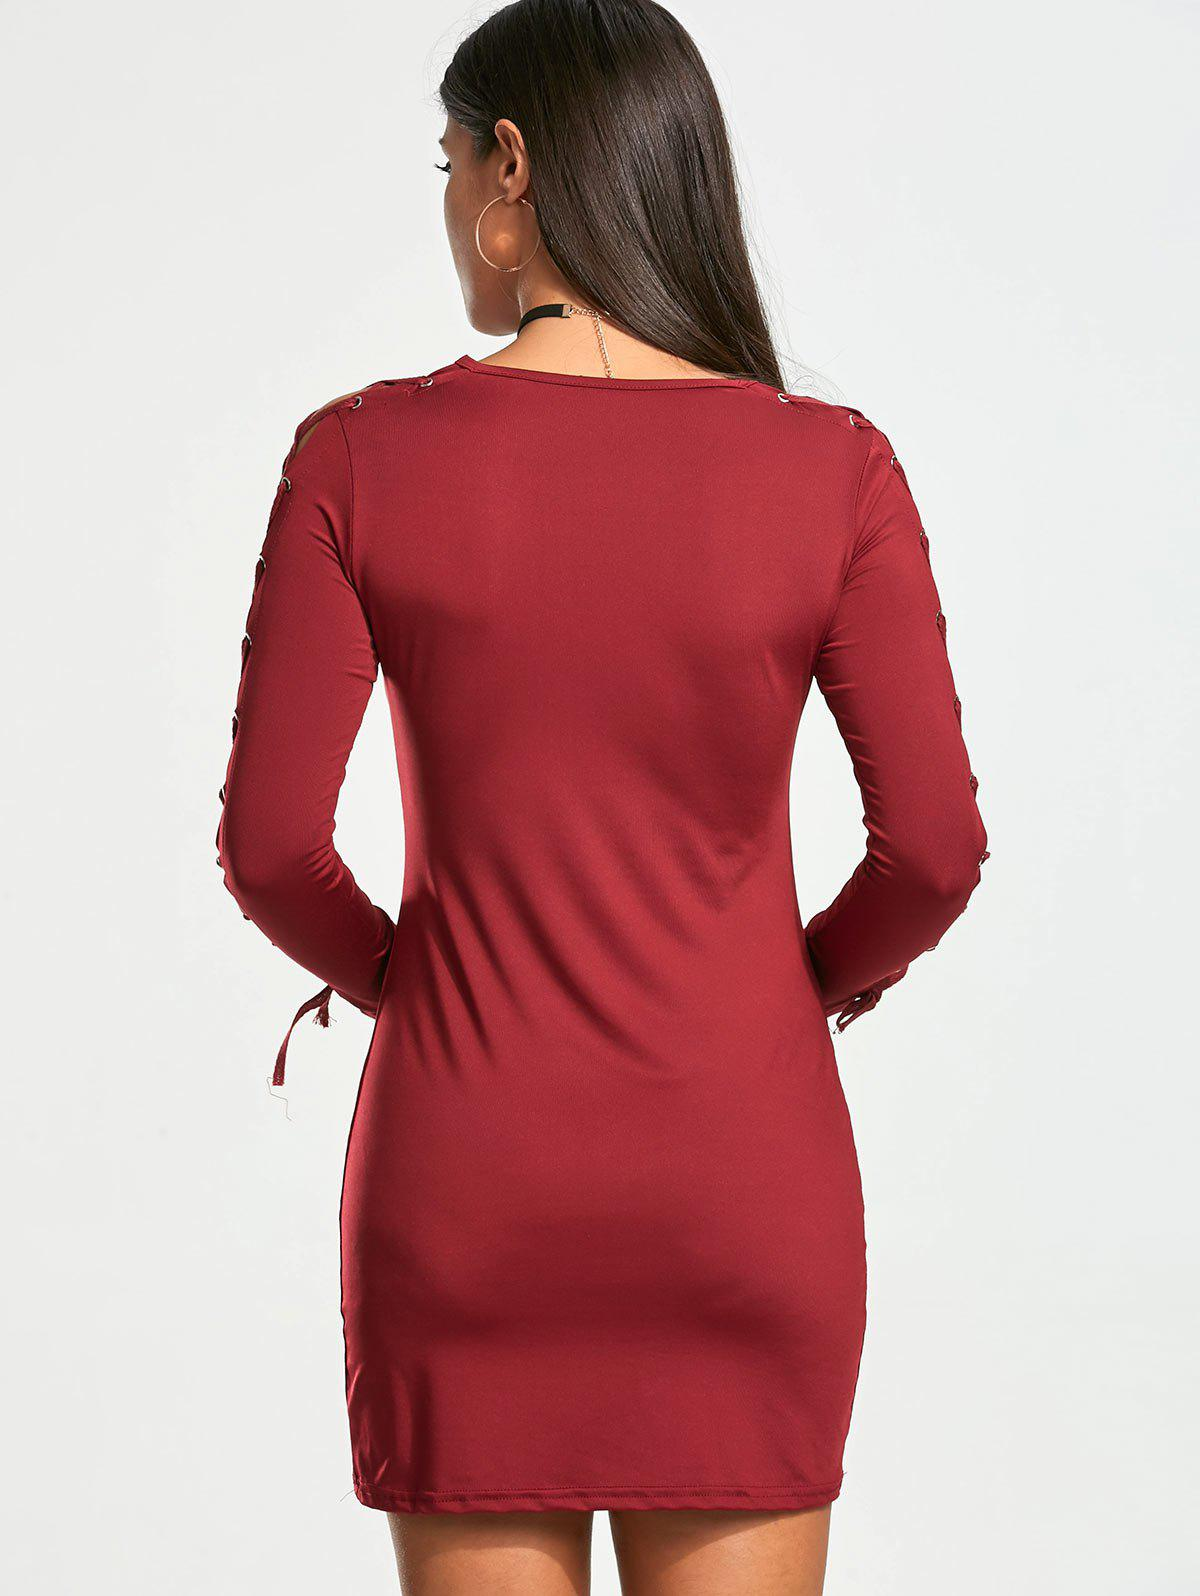 Lace Up Long Sleeve Bodycon Mini Dress - WINE RED XL